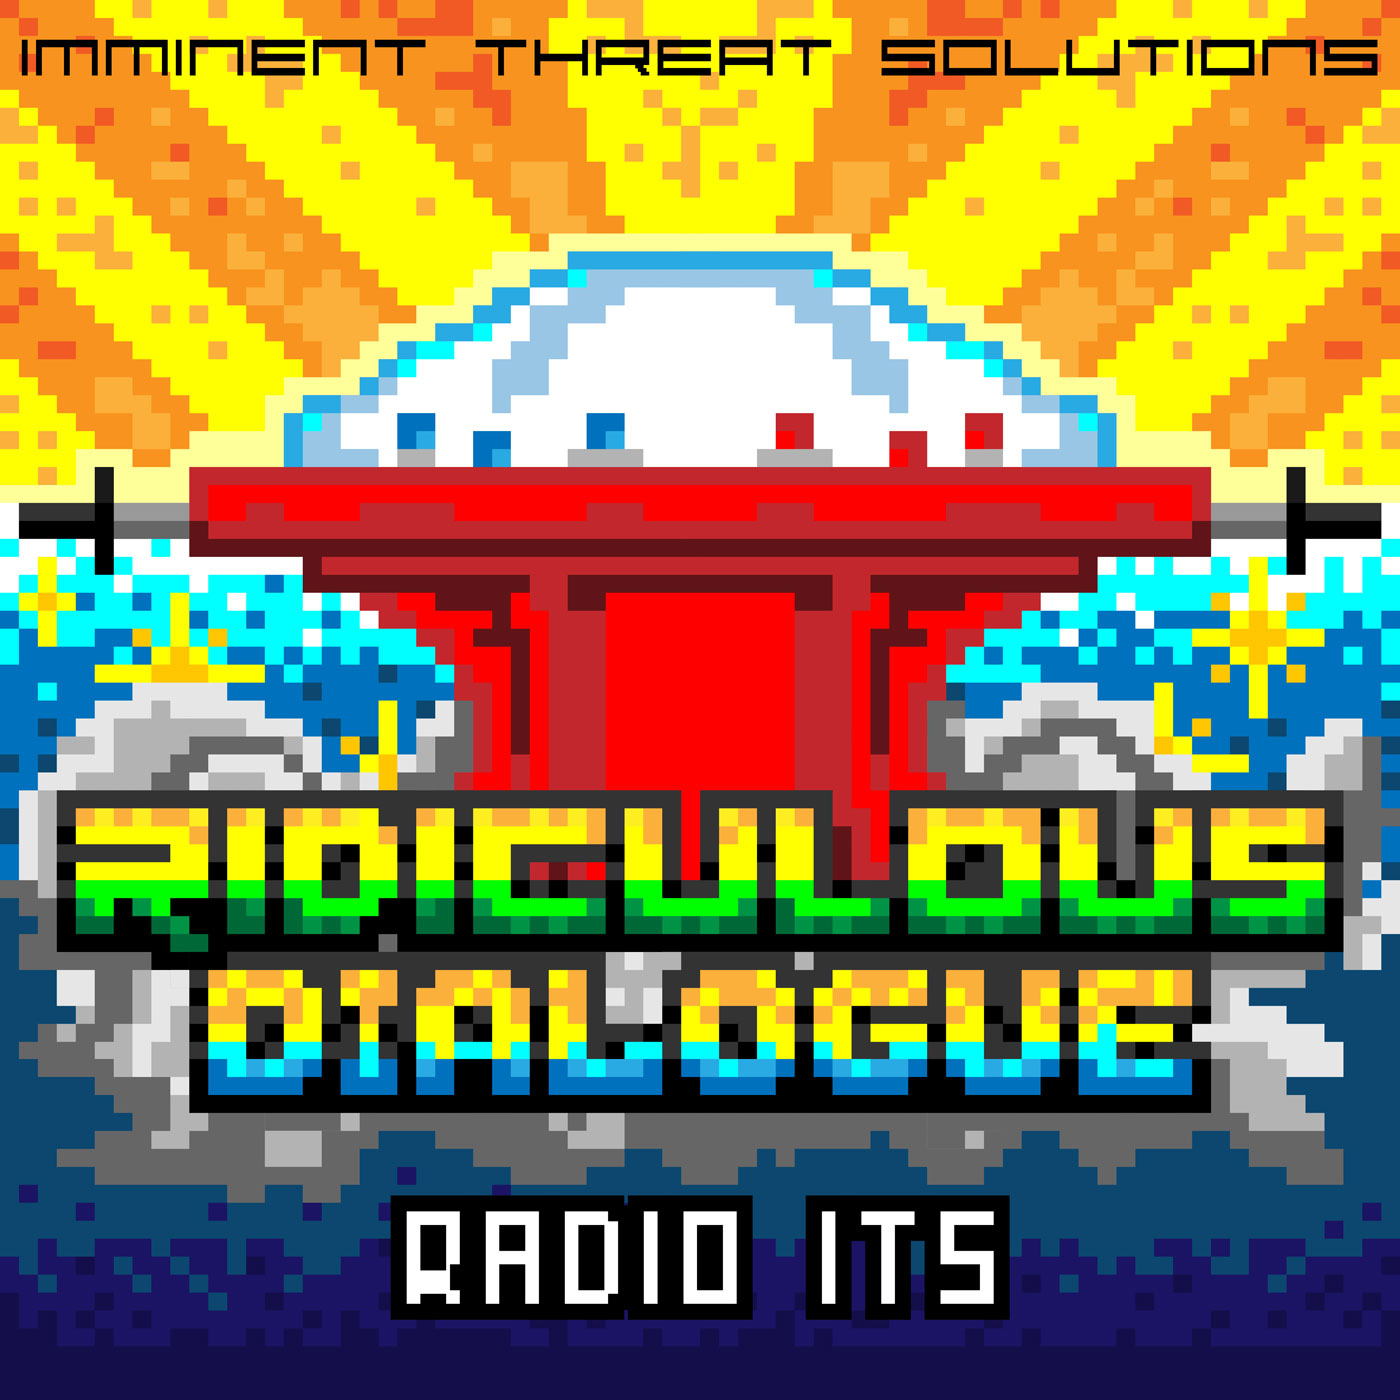 Ridiculous Dialogue Podcast Its Tactical How To Replace A Bathtub Faucet 63jpg Apps Directories